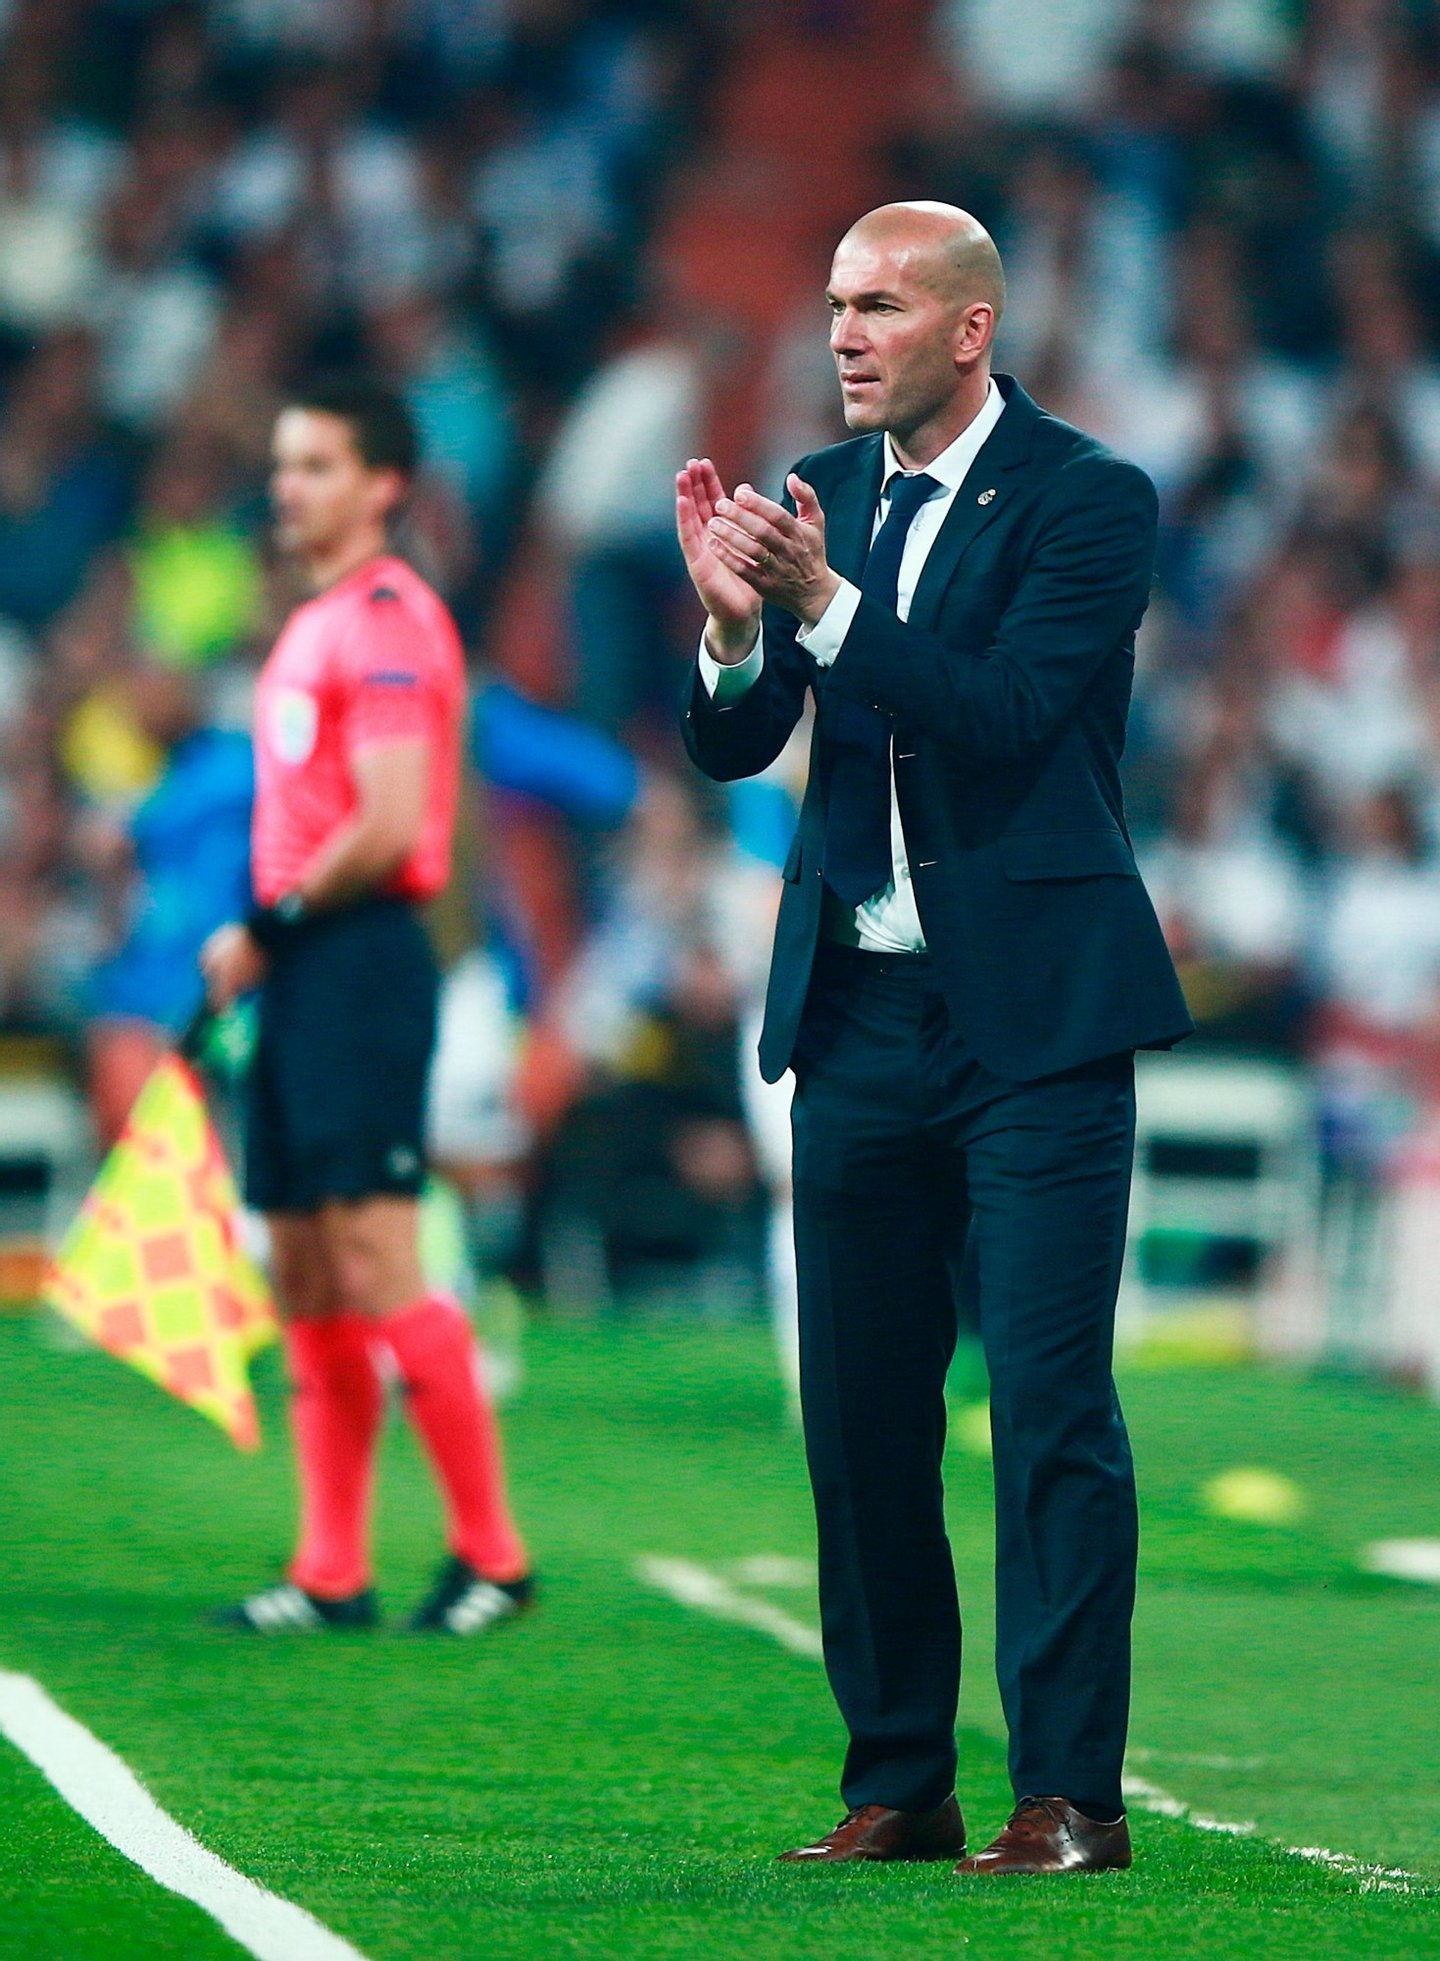 MADRID, SPAIN - MAY 04: Zinedine Zidane the head coach of Real Madrid reacts during the UEFA Champions League semi final, second leg match between Real Madrid and Manchester City FC at Estadio Santiago Bernabeu on May 4, 2016 in Madrid, Spain. (Photo by Gonzalo Arroyo Moreno/Getty Images)